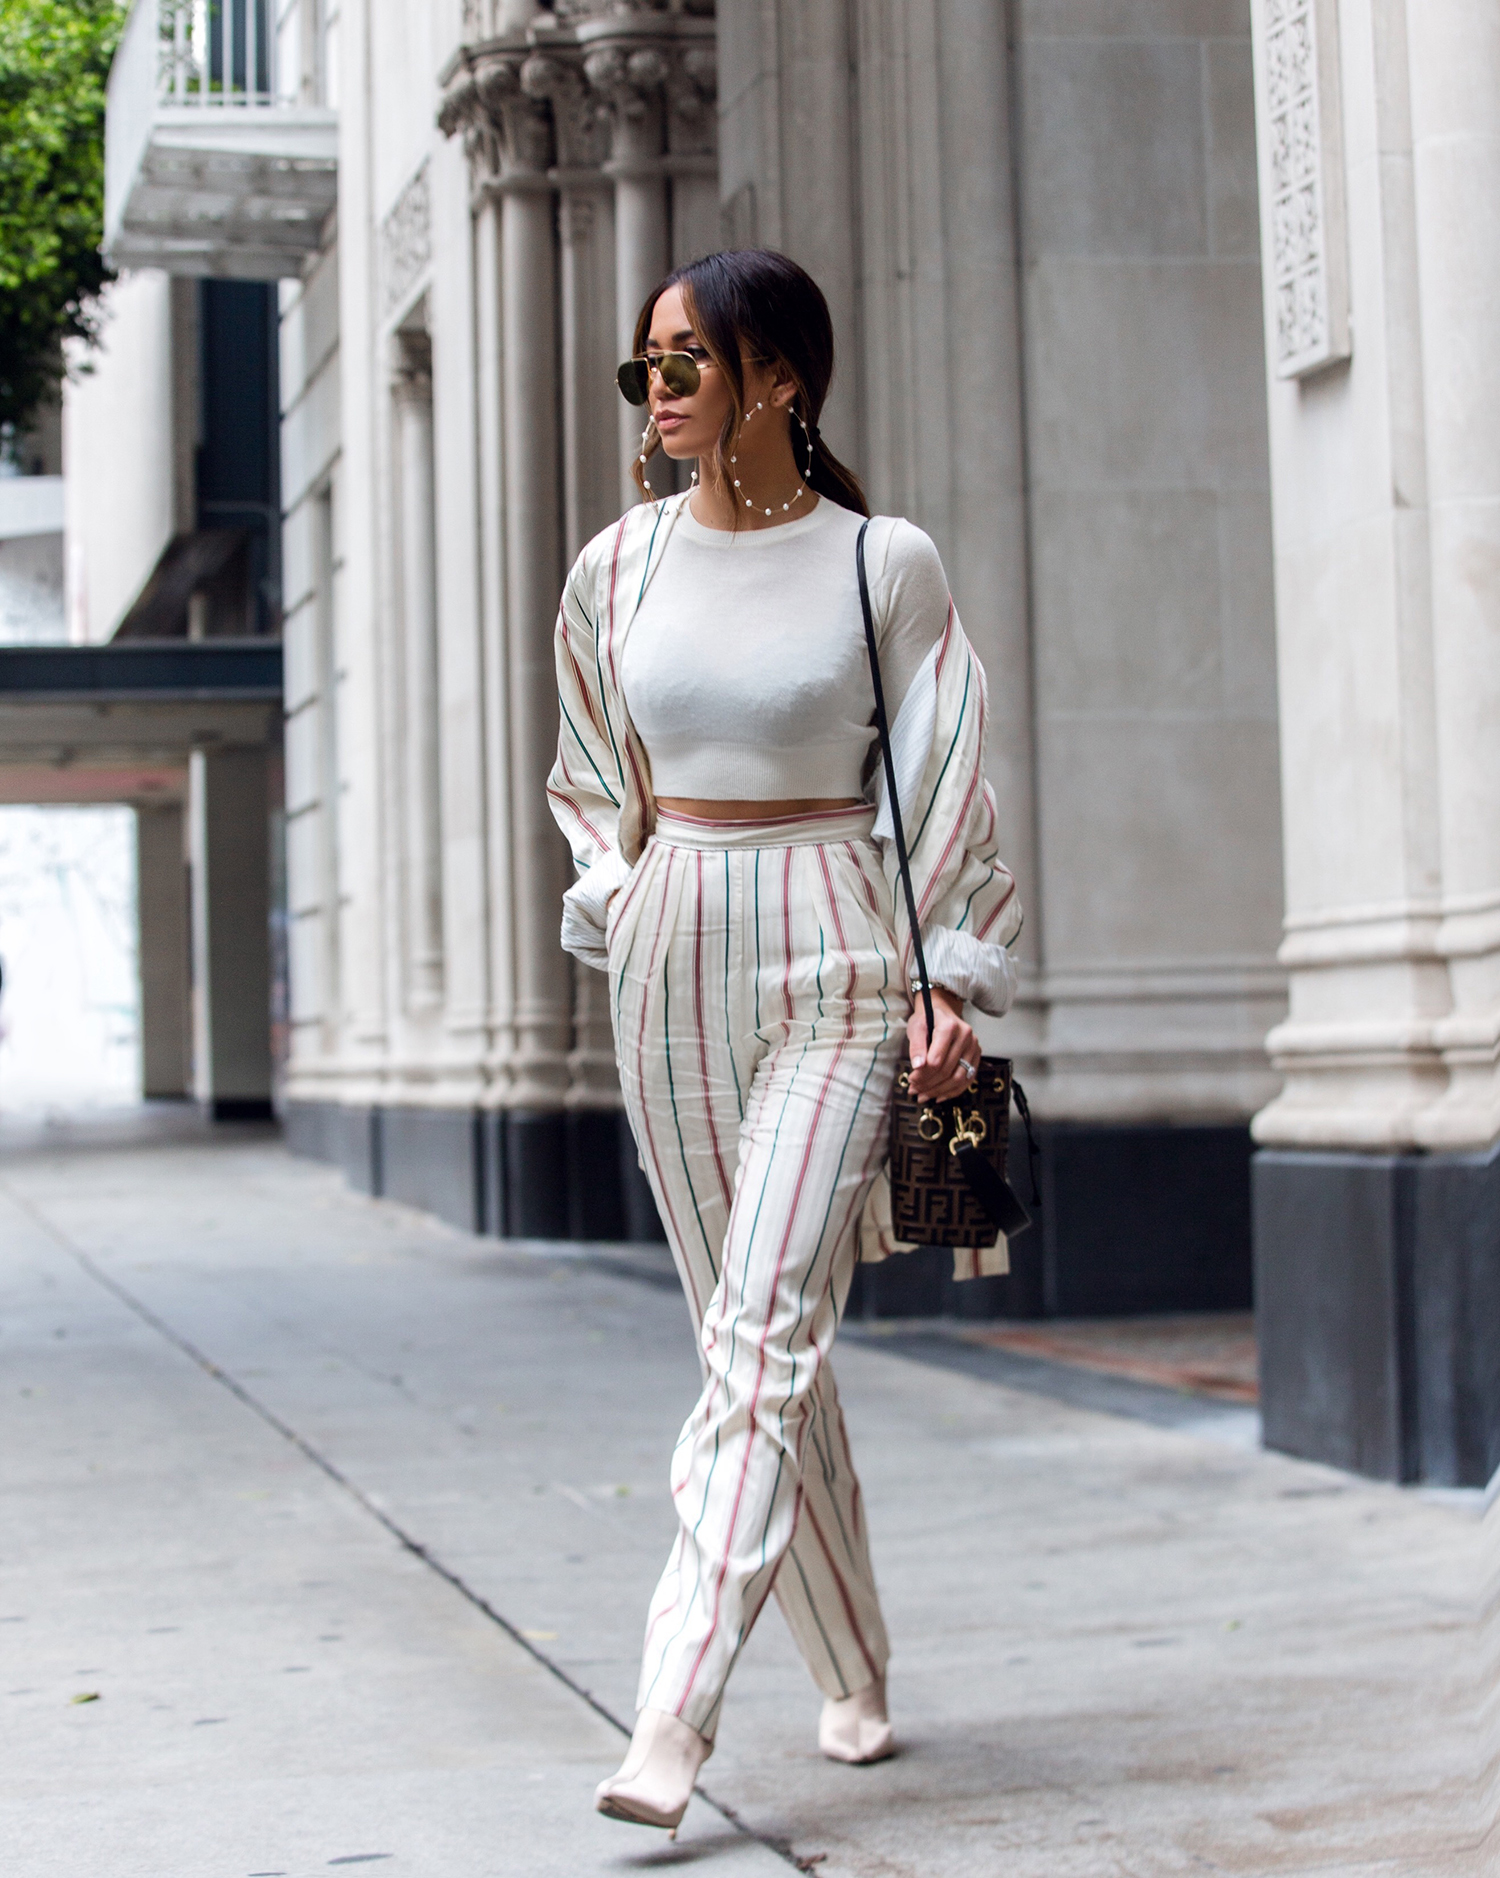 Jessi Malay wearing pinstripe suit trend